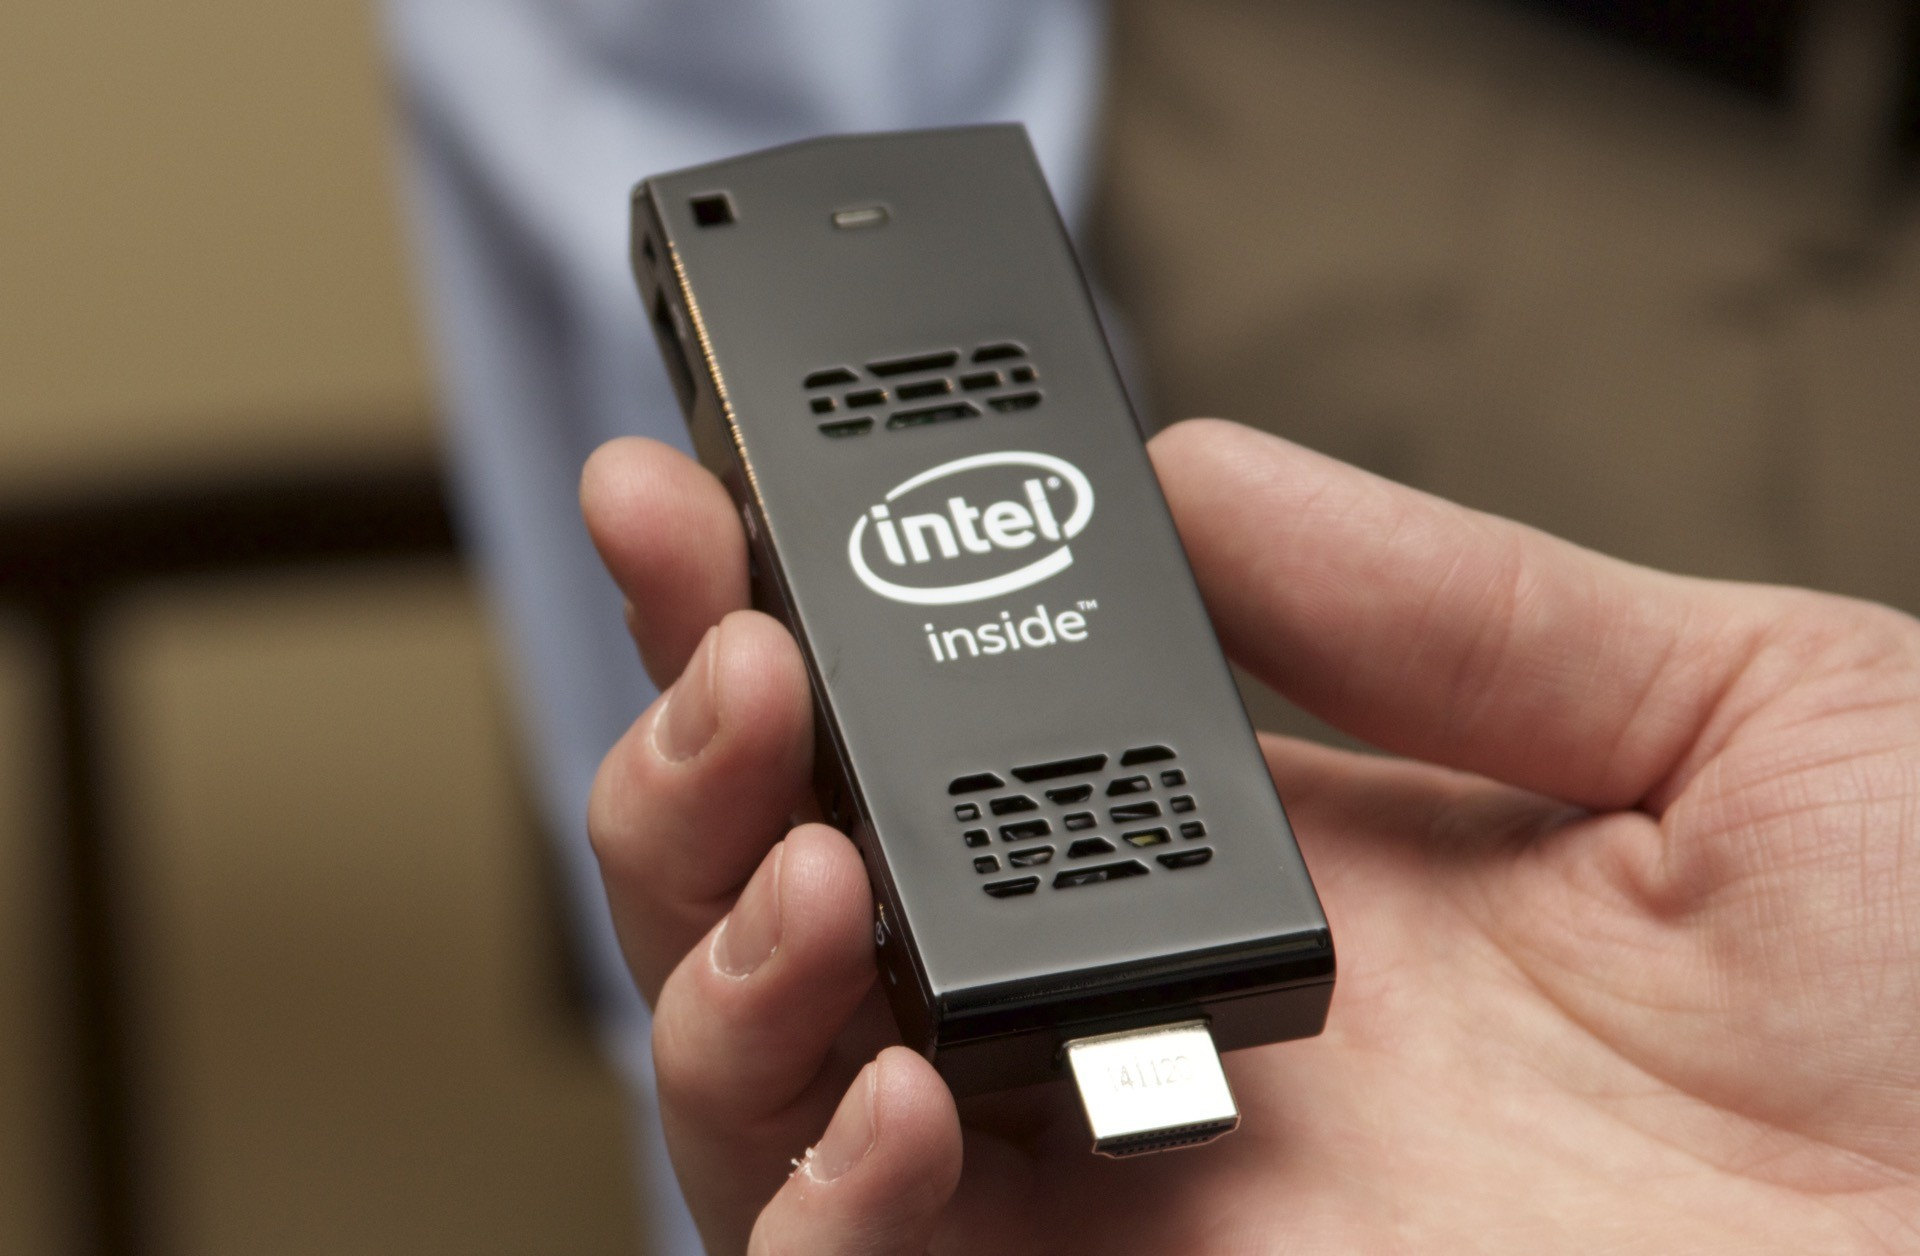 Обзор микрокомпьютера Intel Compute Stick: Windows-ПК в кармане